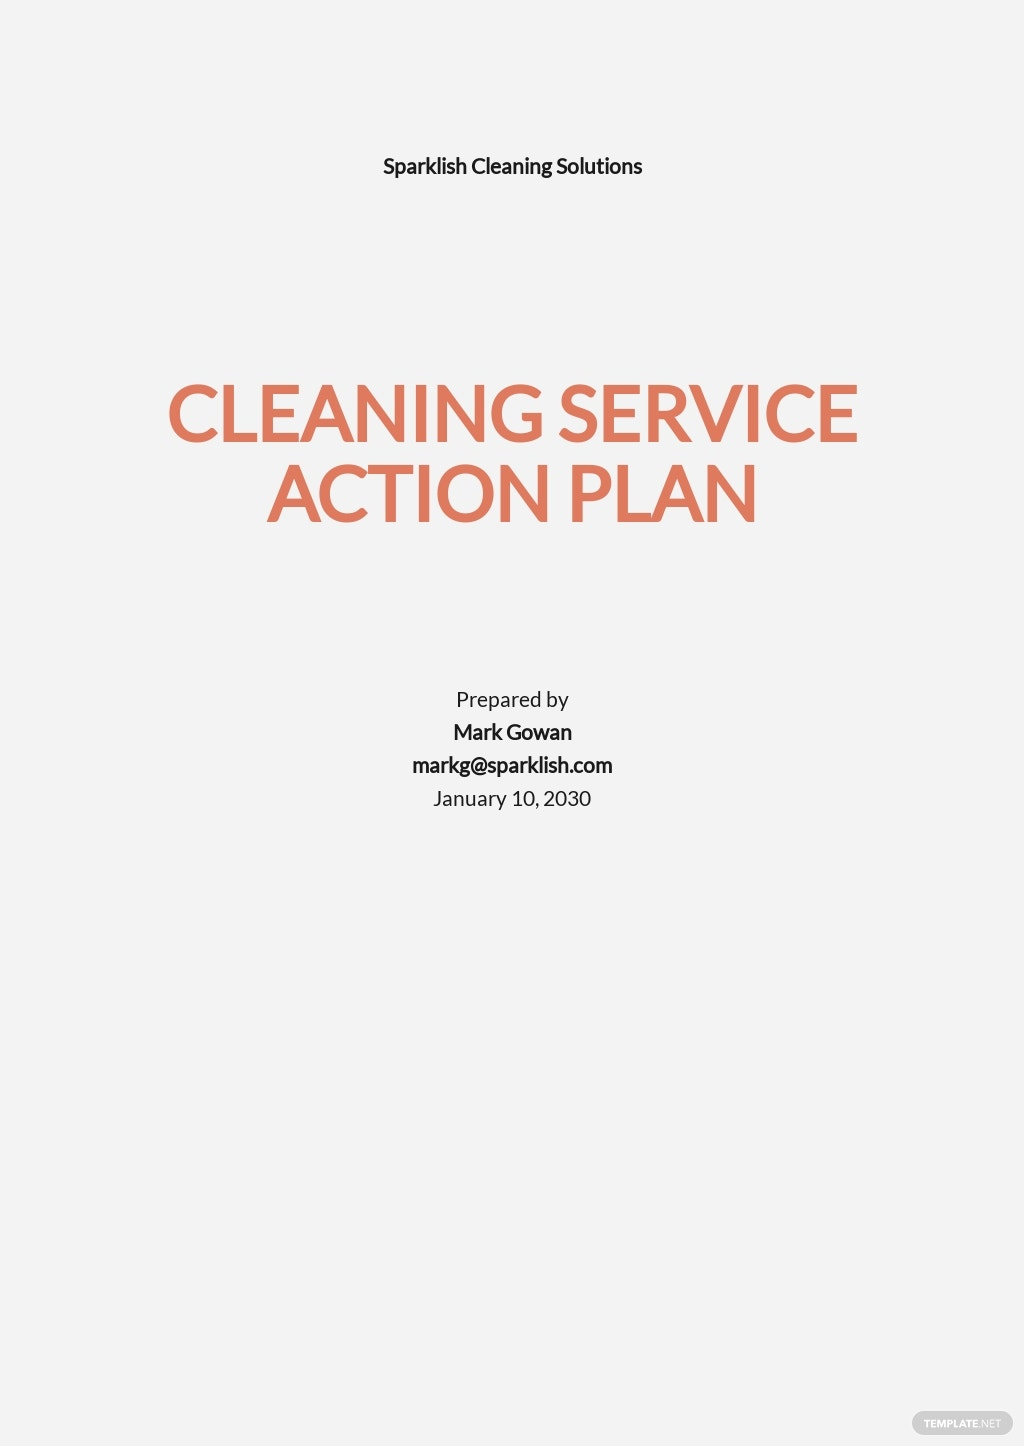 Action Plan Template For Cleaning Services.jpe